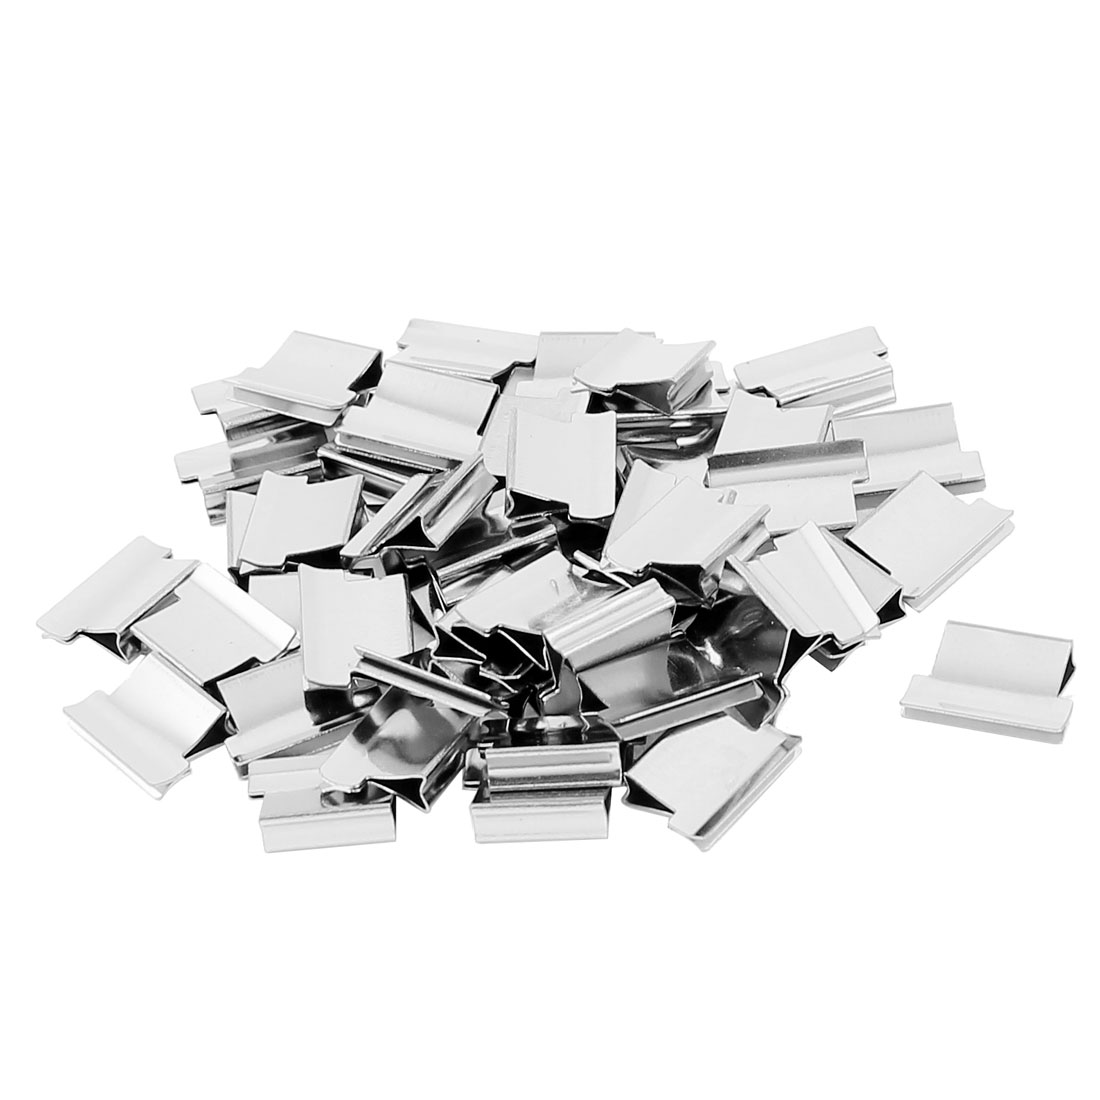 13mm x 9mm x 3mm Metal Reusable Staple Binding Refills Clam Clips Nalclip 50 Pcs